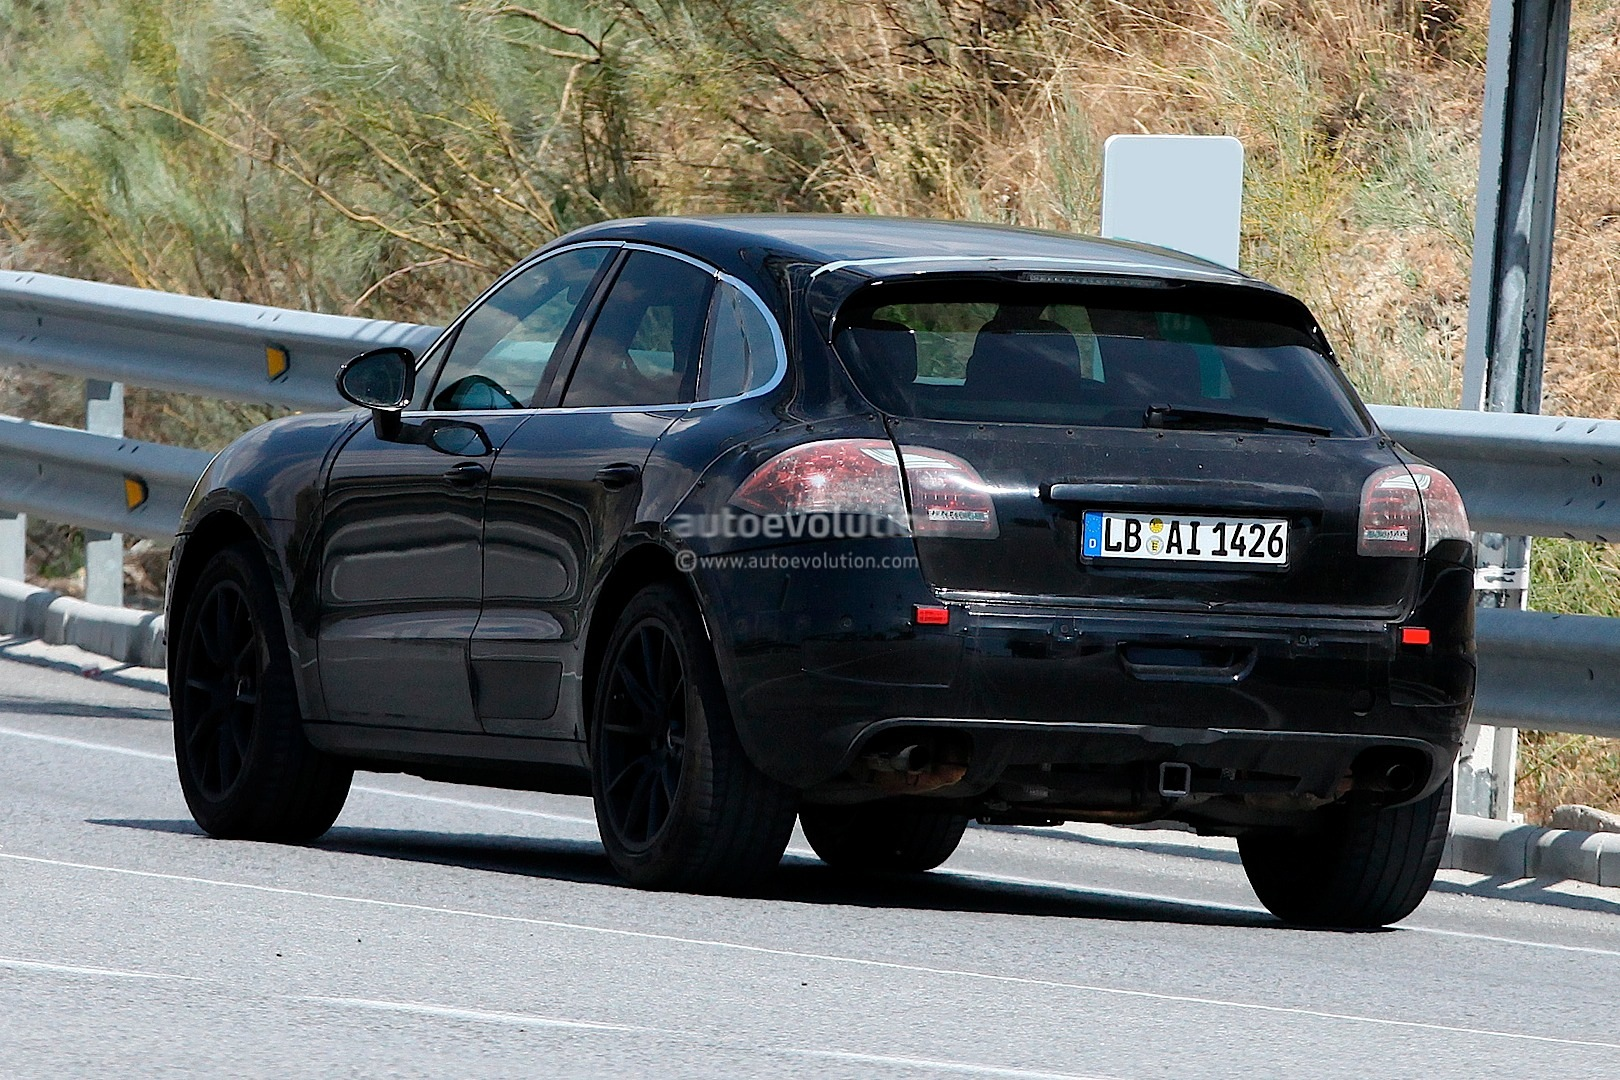 Spyshots porsche macan suv nearing production autoevolution